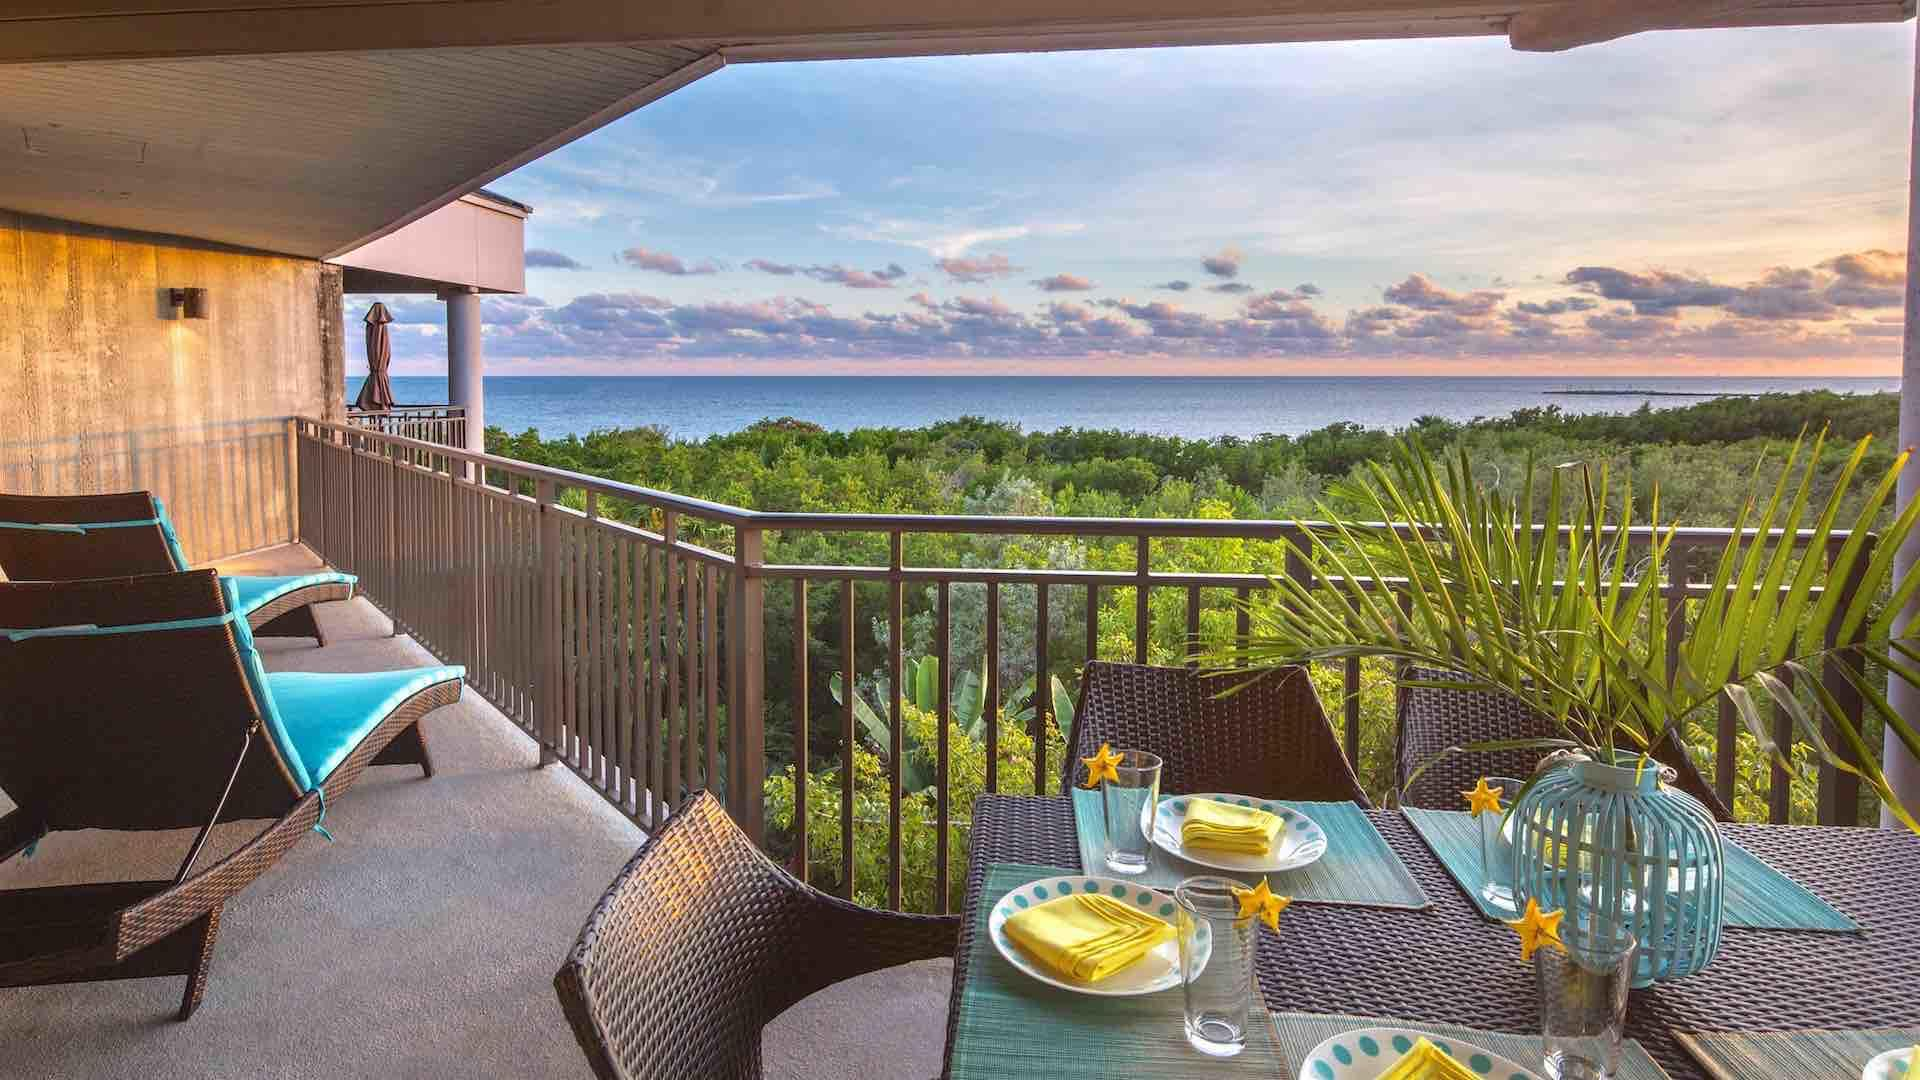 Key West penthouse condo rental with ocean views and 2 bedrooms sleeps 6